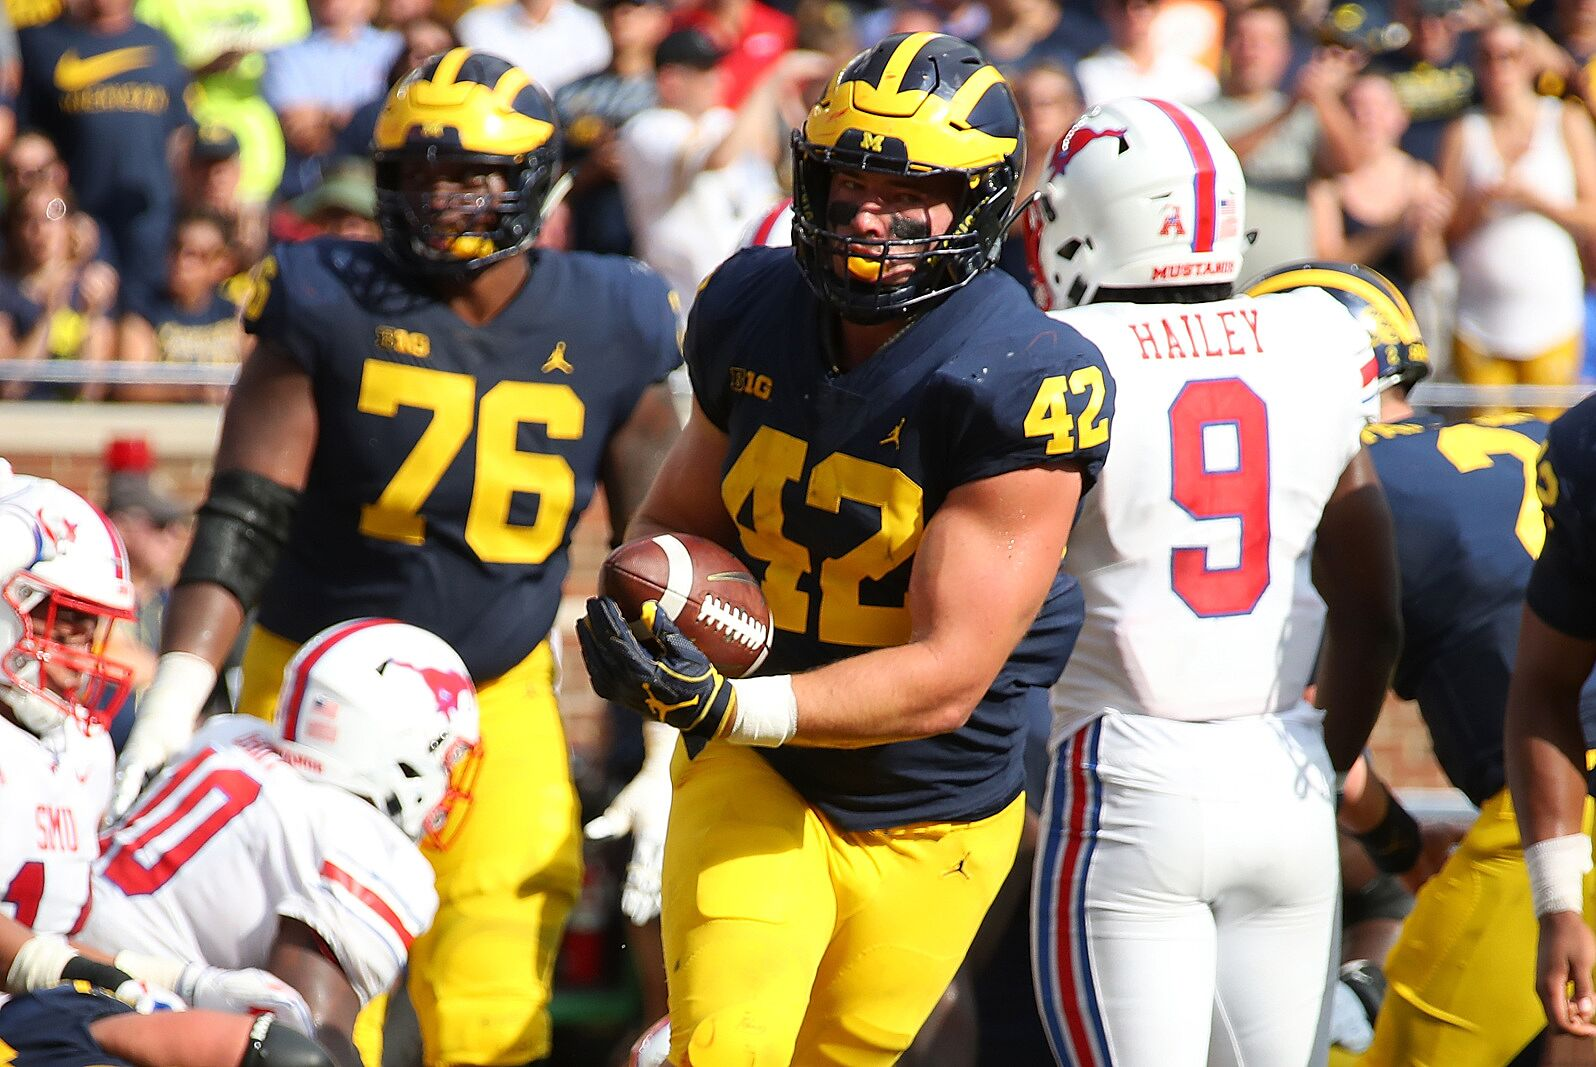 Against A Nebraska Team That Is Better Than It Looks Michigan Football Dominated Saturday Showing Signs Of Being A Big Ten Title Contender